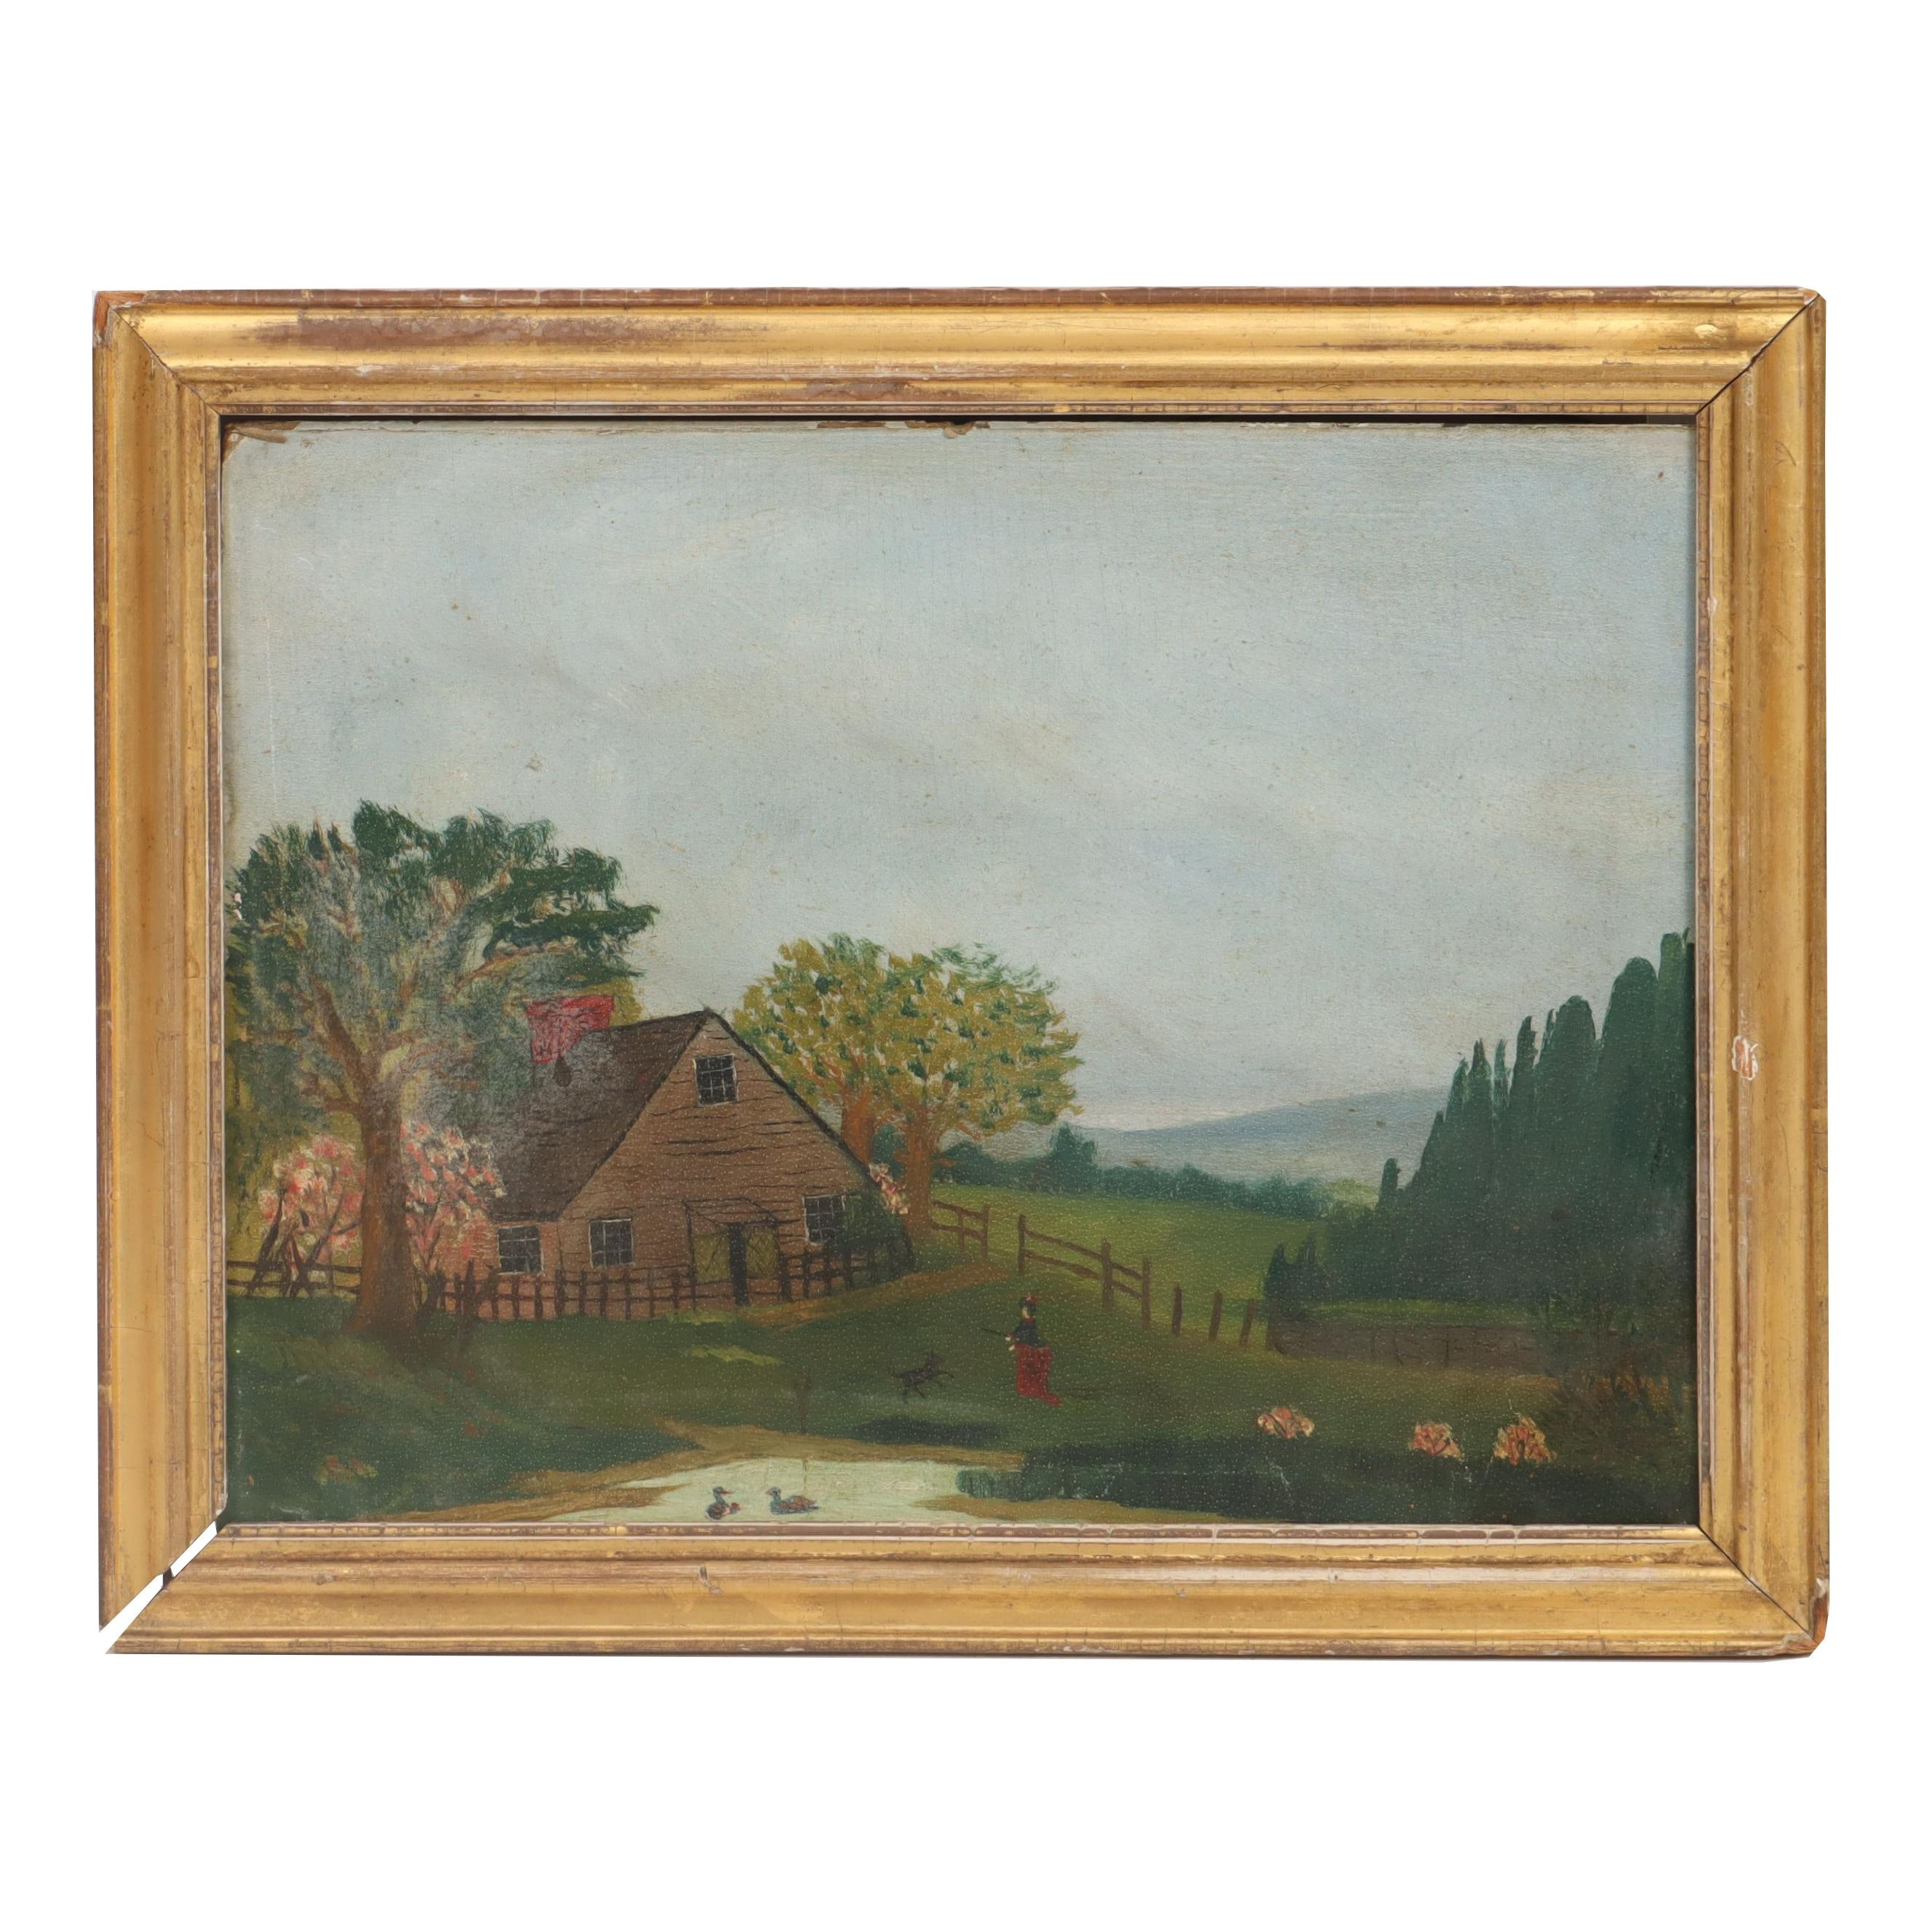 Late 19th Century Rural Landscape Oil Painting